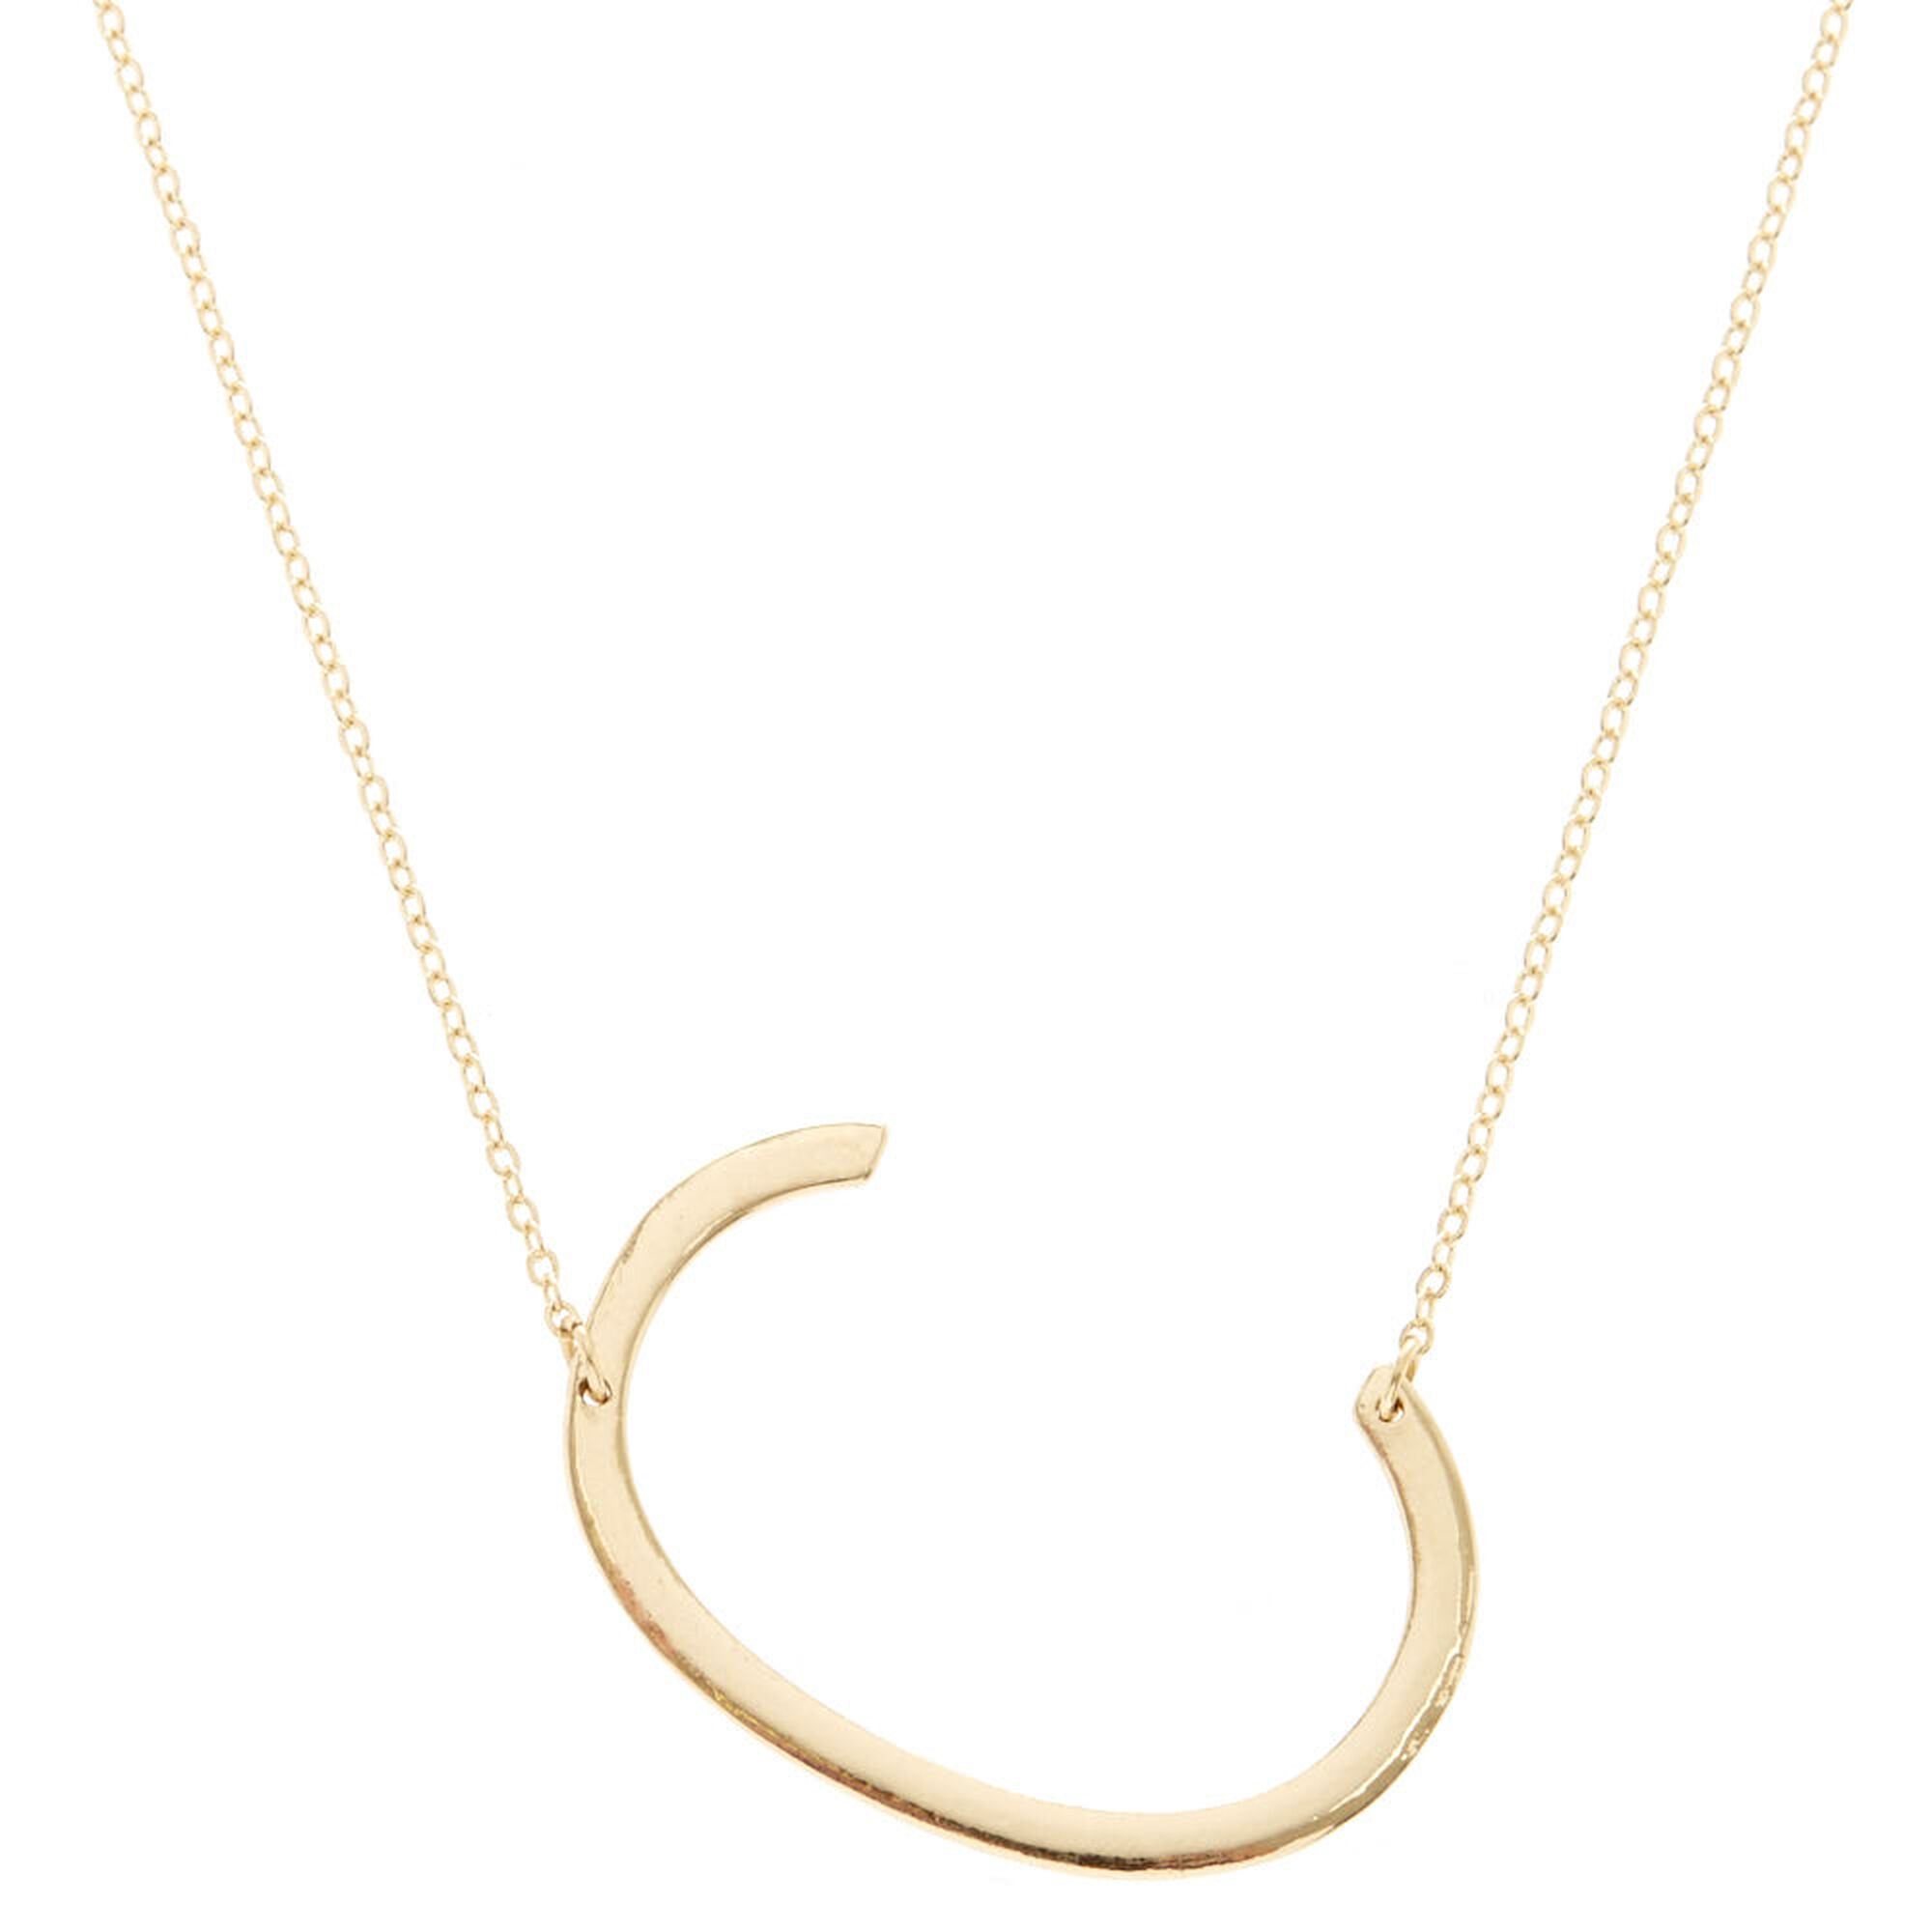 c gold letter initial pendant necklace diamond